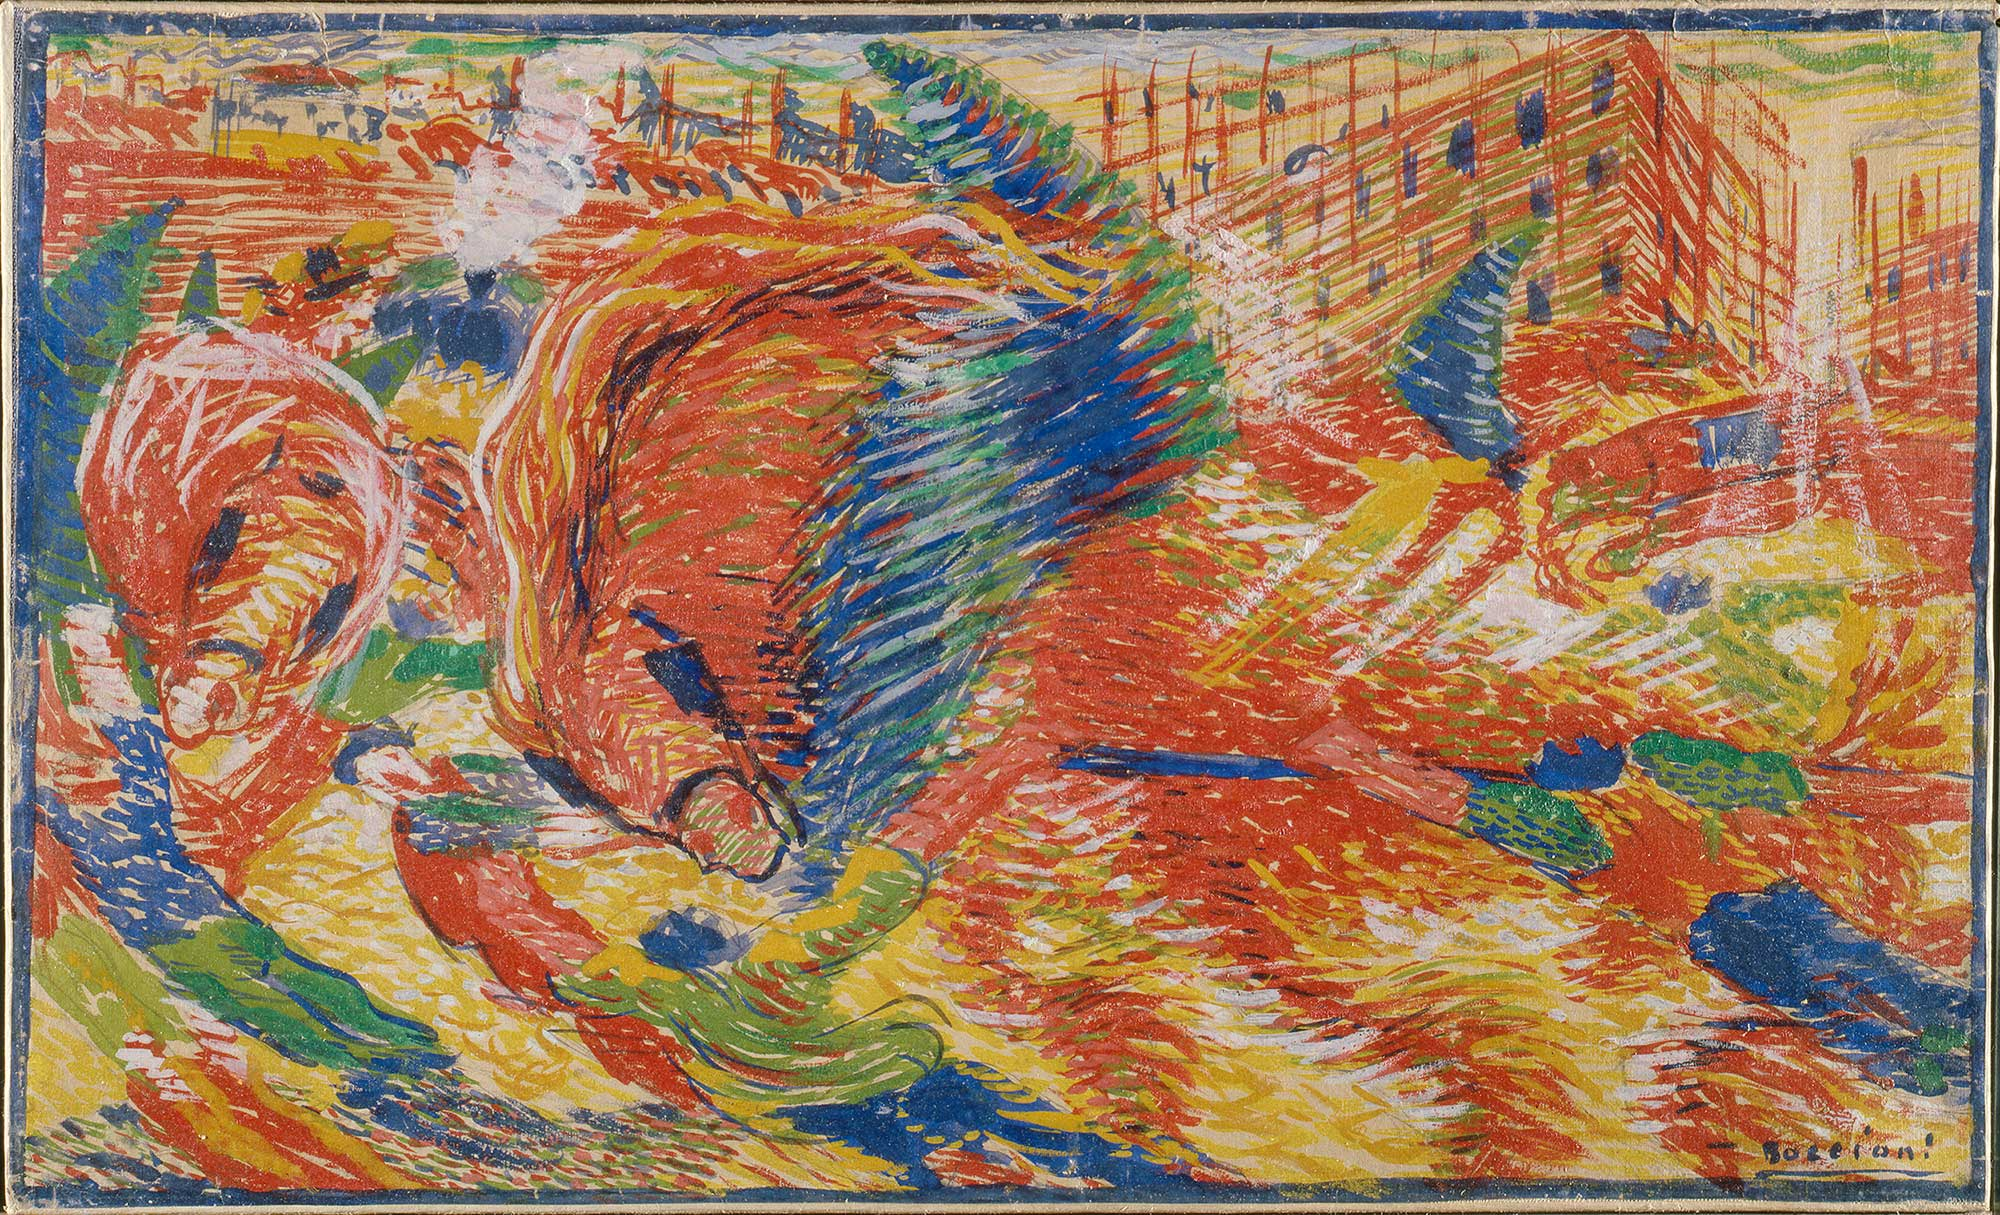 futurism art movement Facts and information on the futurism art movement - the development of futurist  paintings - history of the futurism modern art movement.